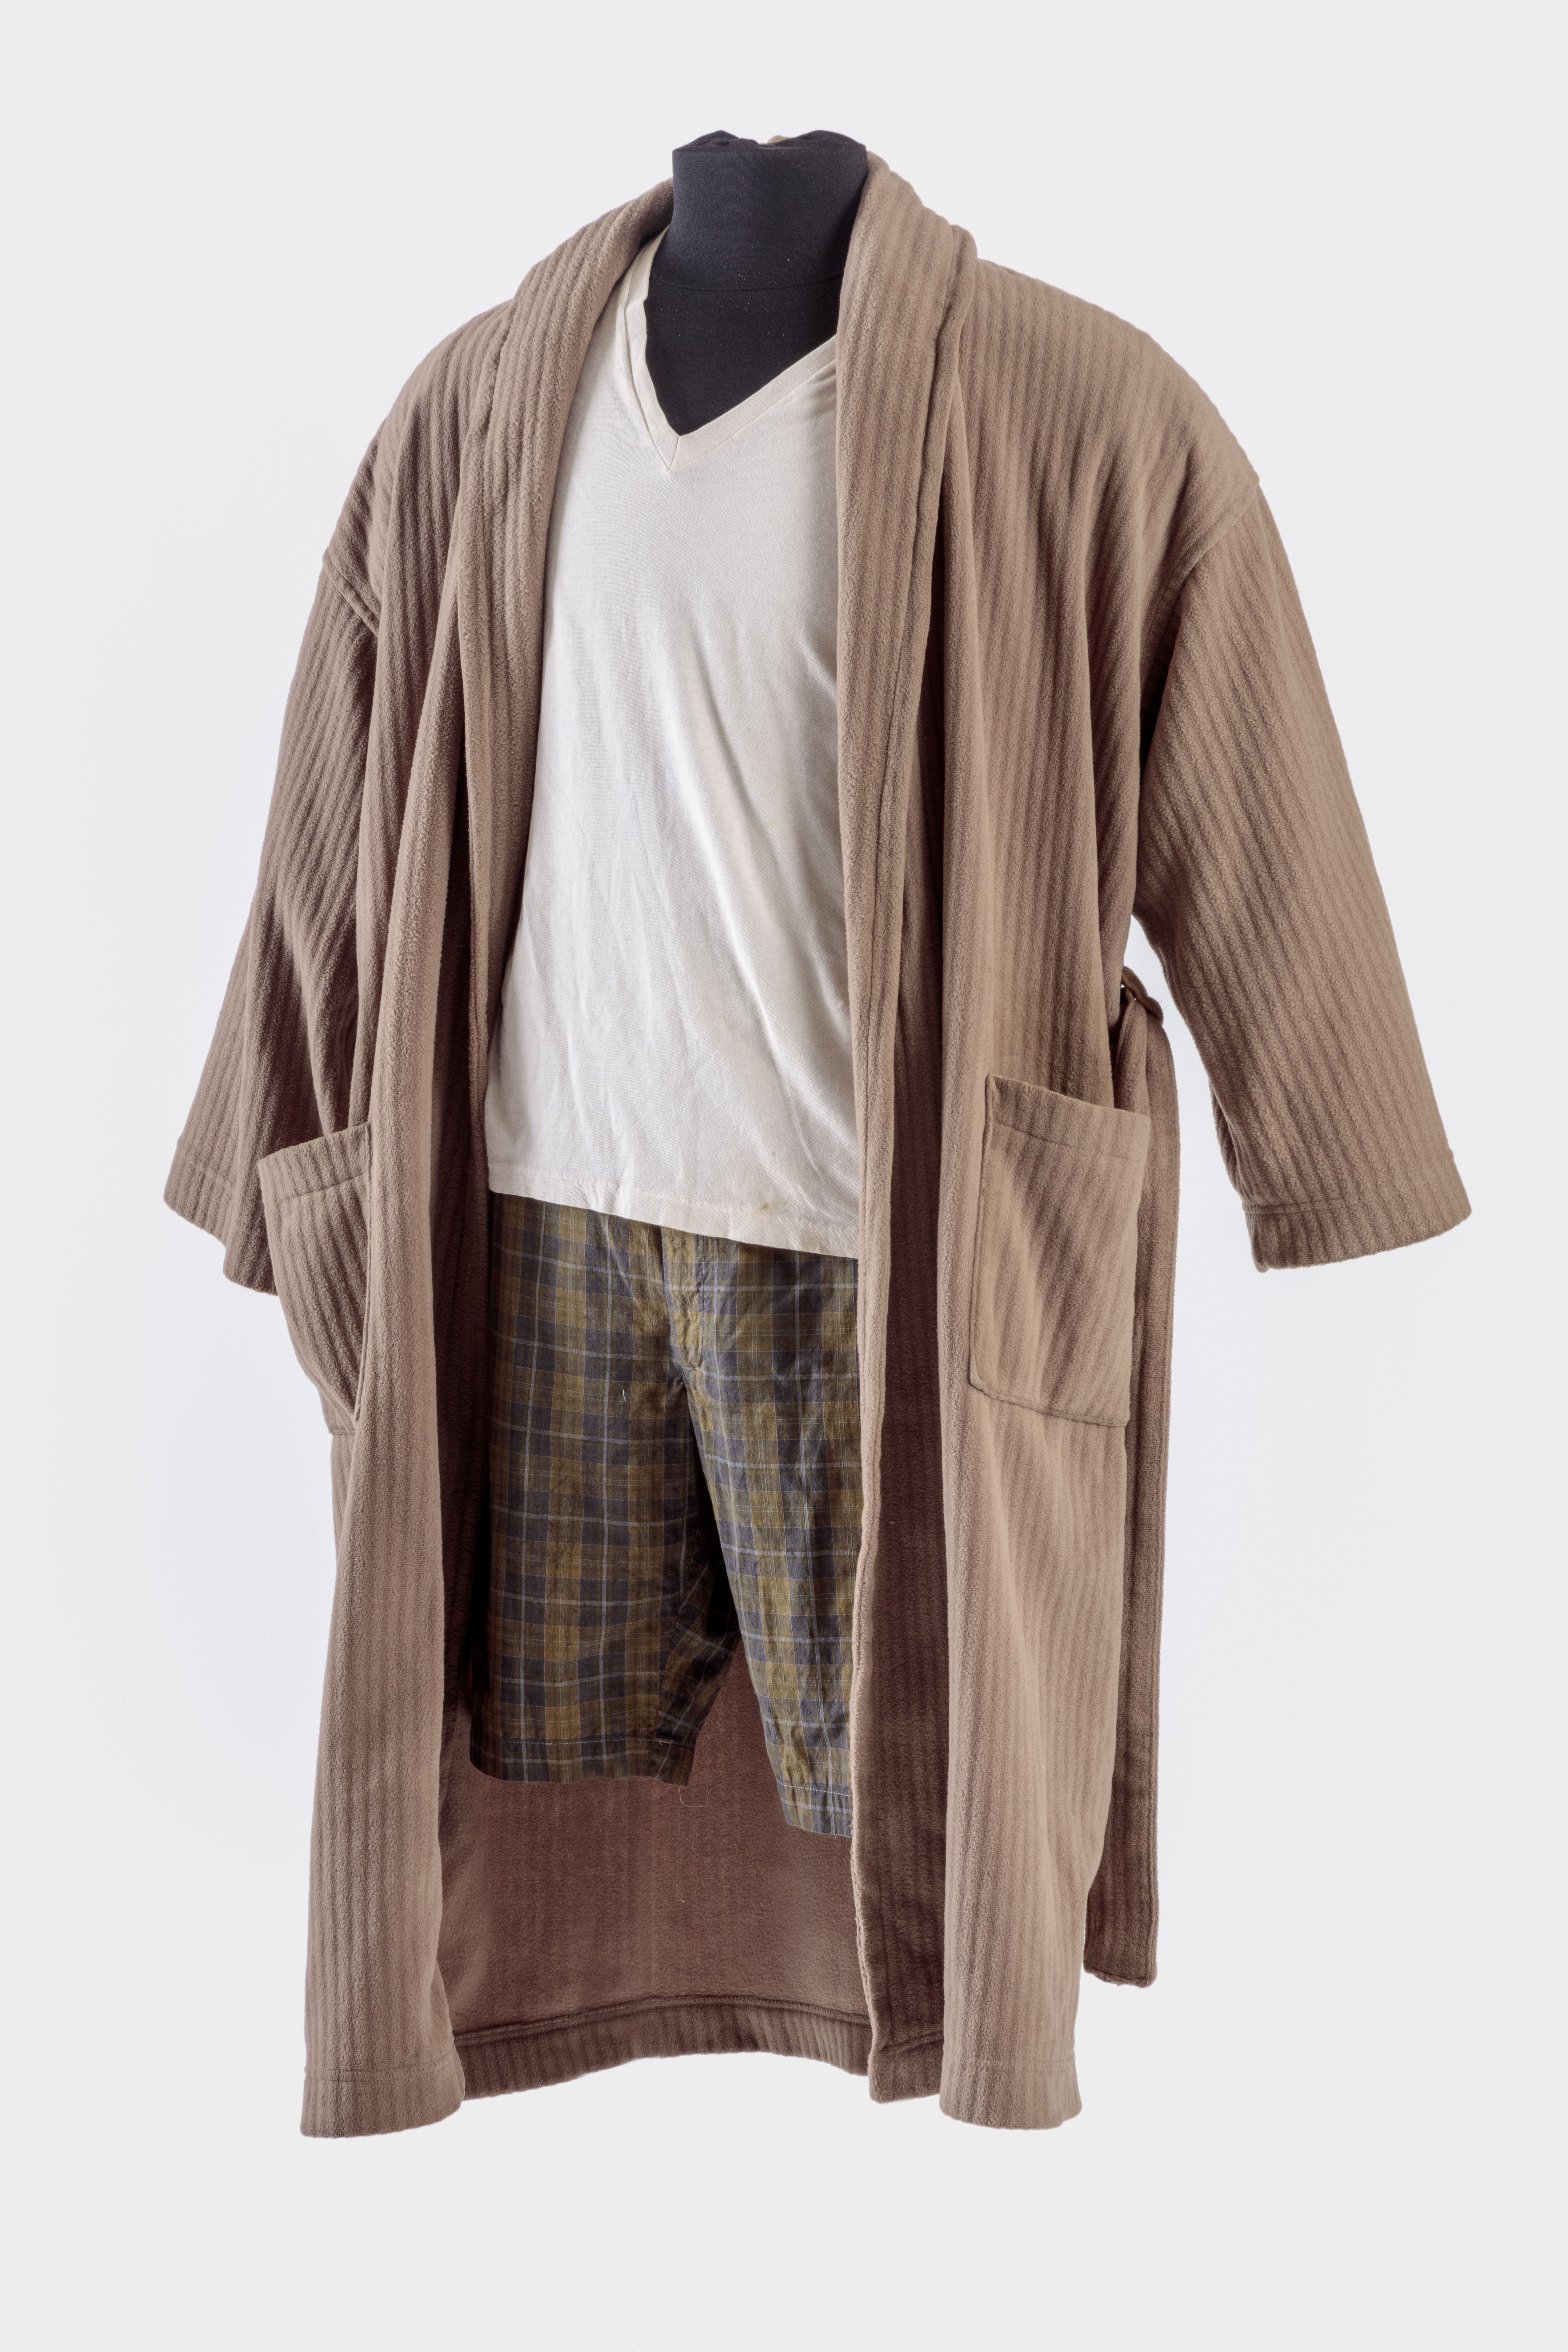 Dude's Go-to Garb from The Big Lebowski (see below scroll for details)*